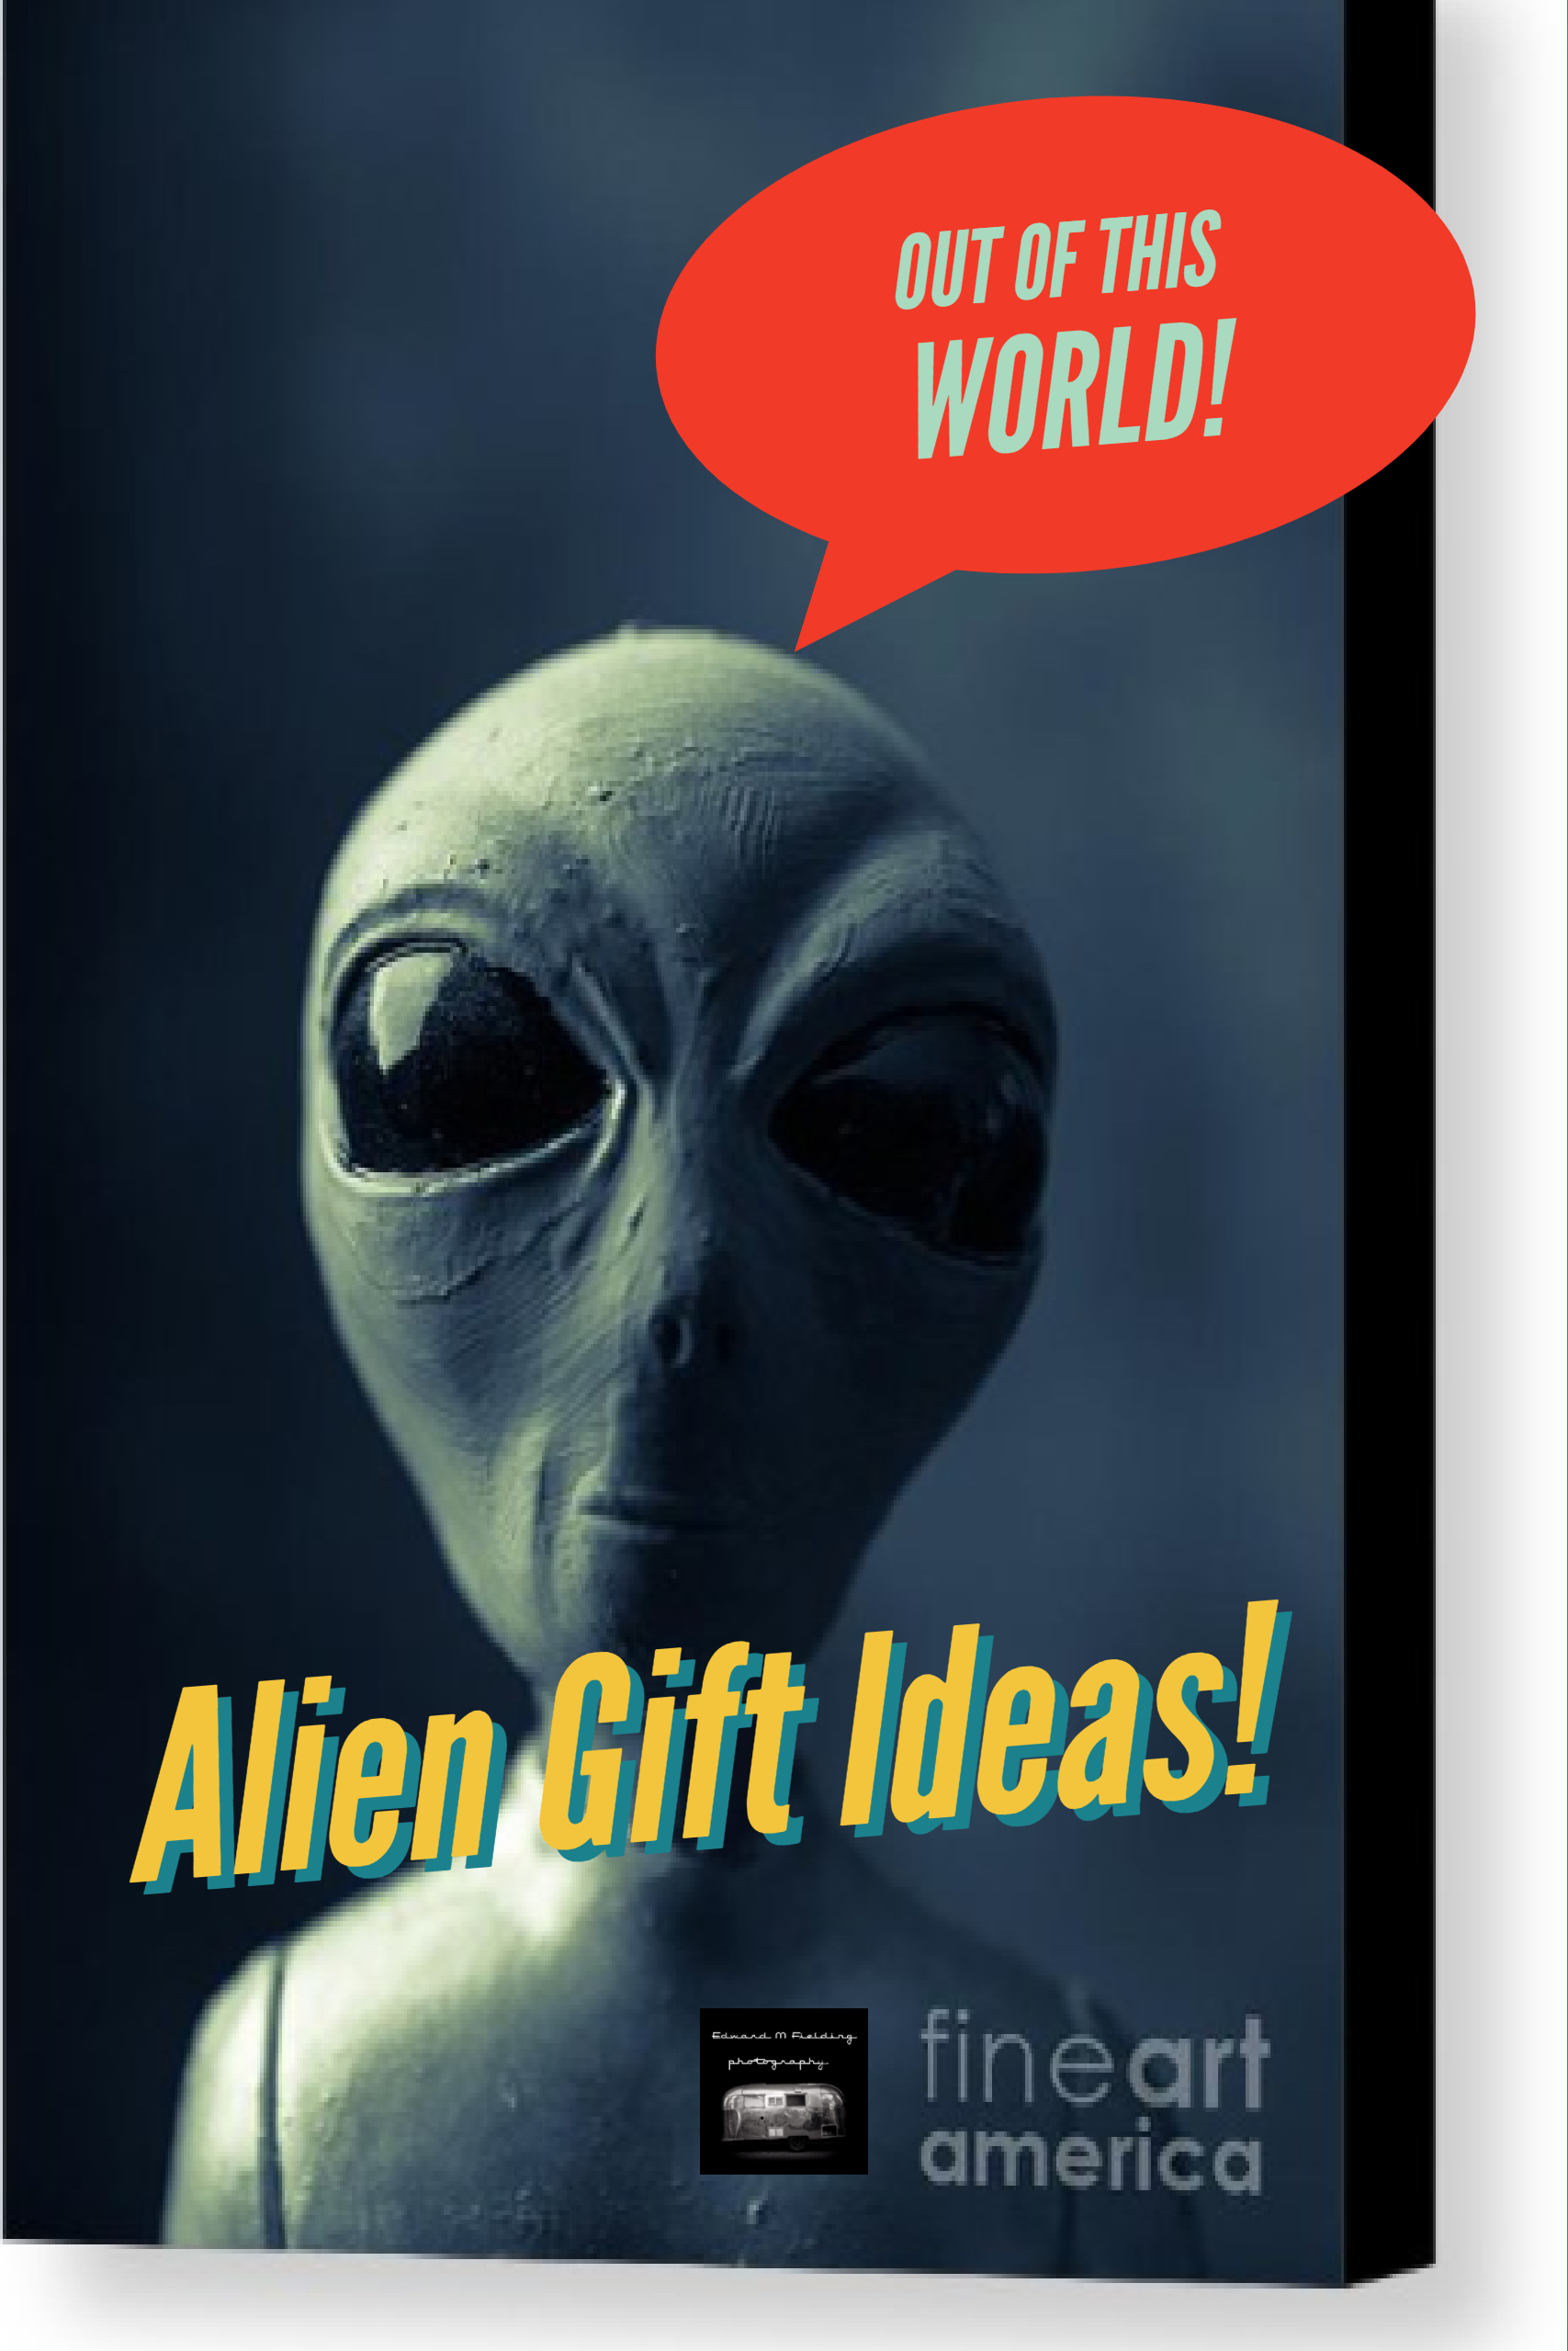 Out of this world gift ideas!